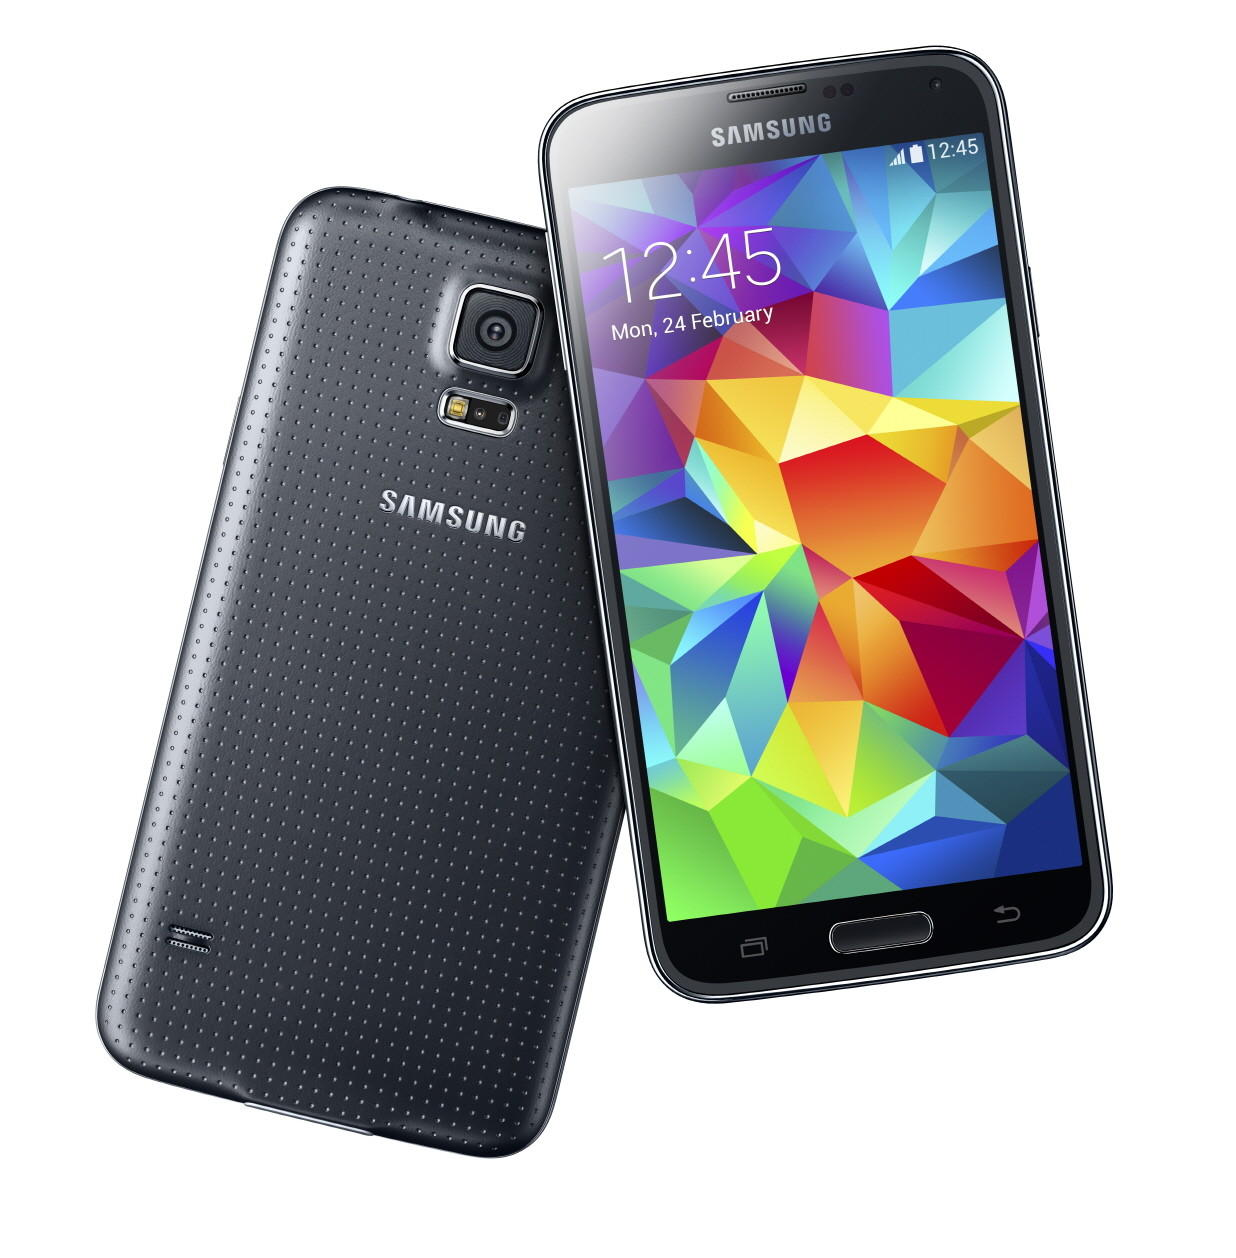 Verizon Wireless has begun taking preorders for the upcoming SamsungGalaxy S5.